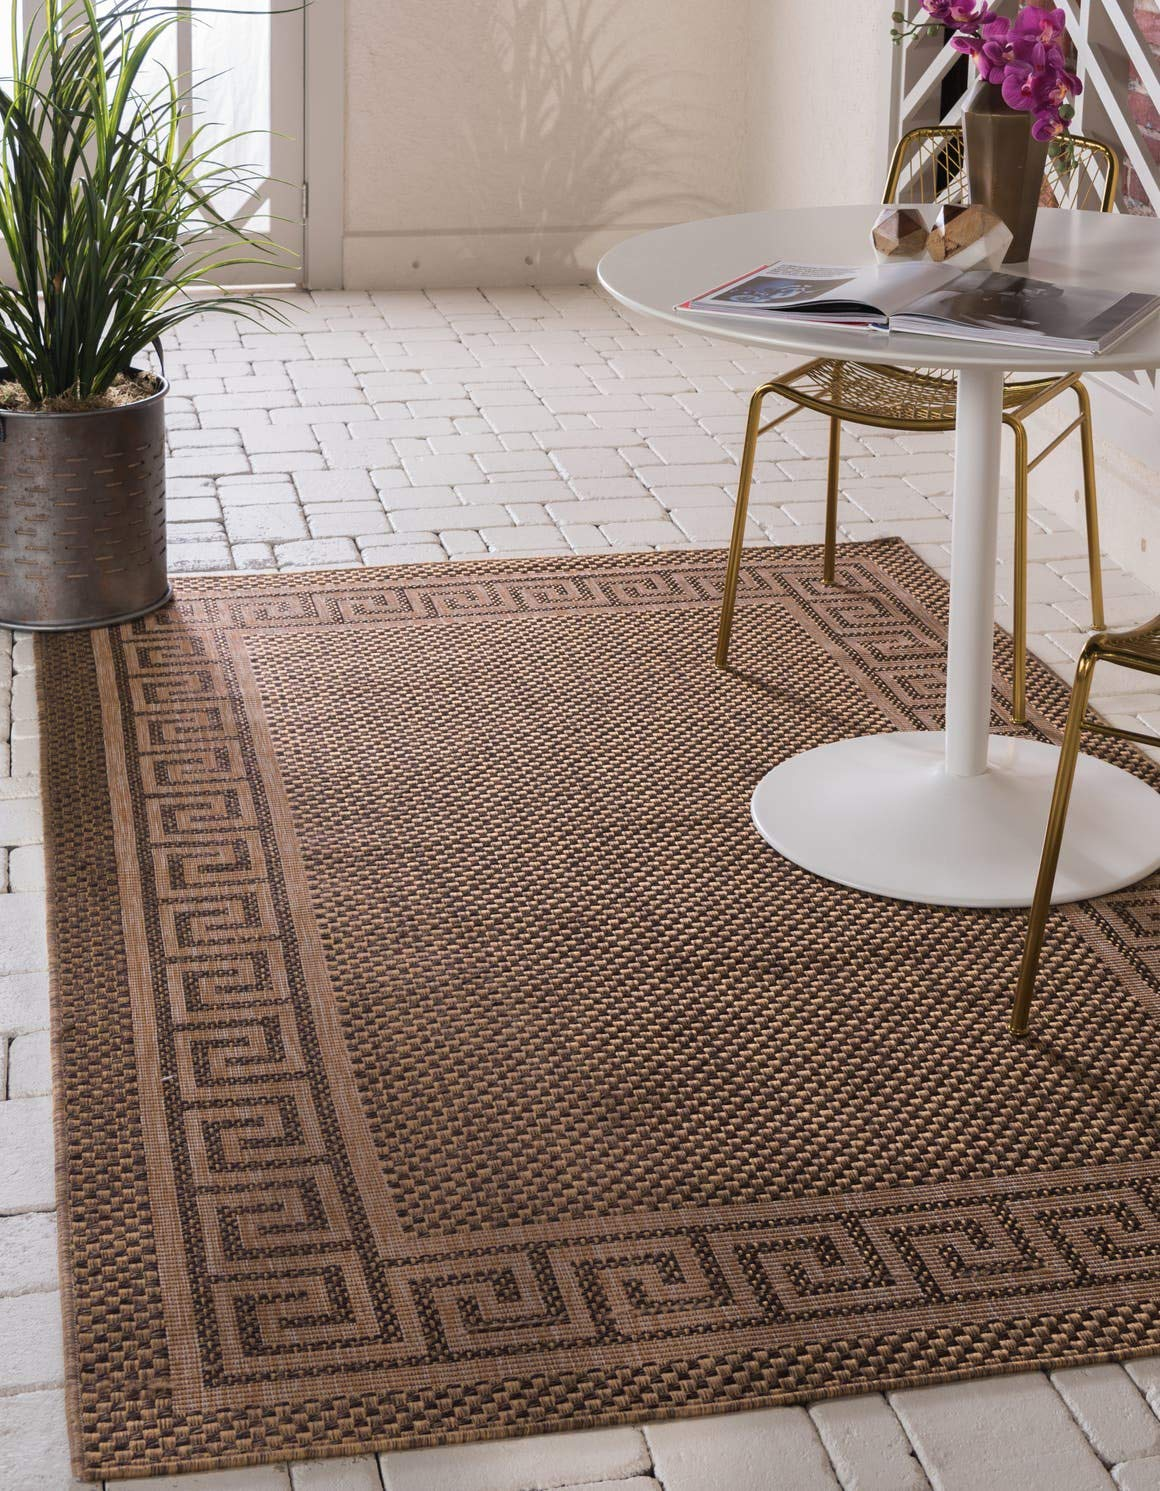 Unique Loom Outdoor Border Collection Casual Greek Key Transitional Indoor and Outdoor Flatweave Brown Area Rug 3 3 x 5 0